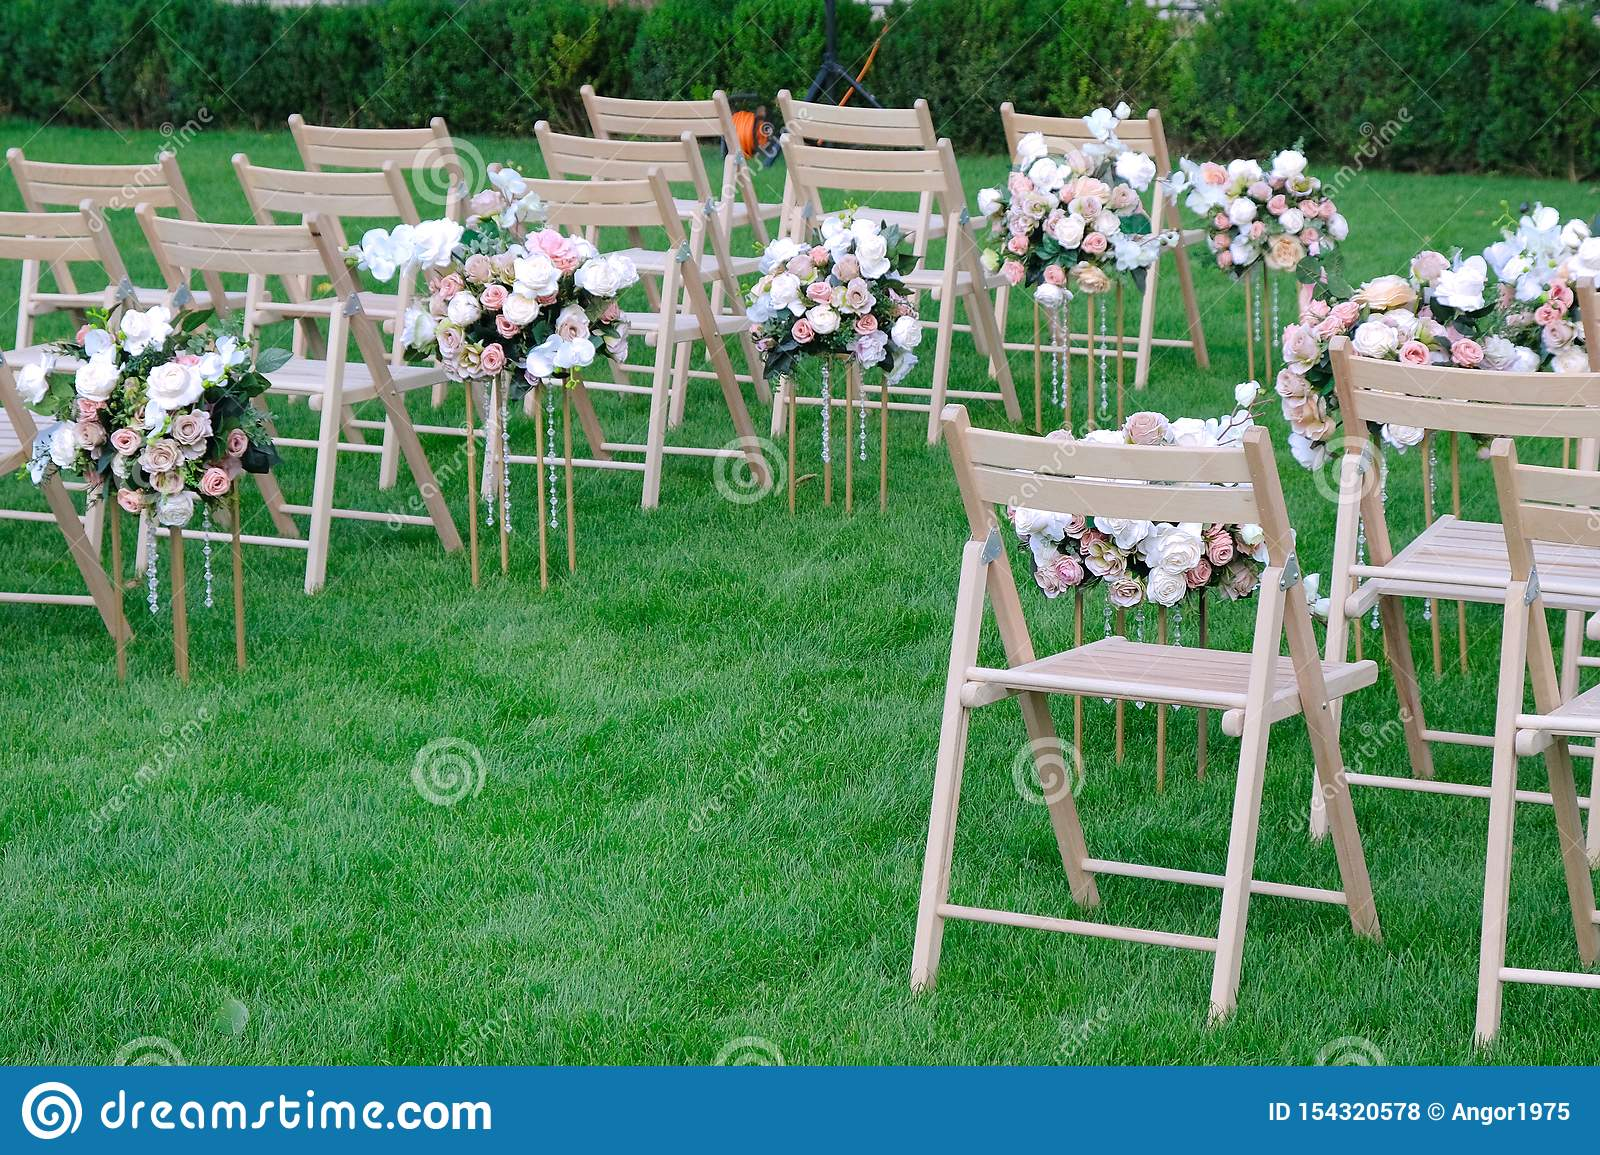 White Wooden Empty Chairs In A Row And Flowers Bouquets On Green Grass Wedding Ceremony Decorations Stock Photo Image Of Bright Furniture 154320578